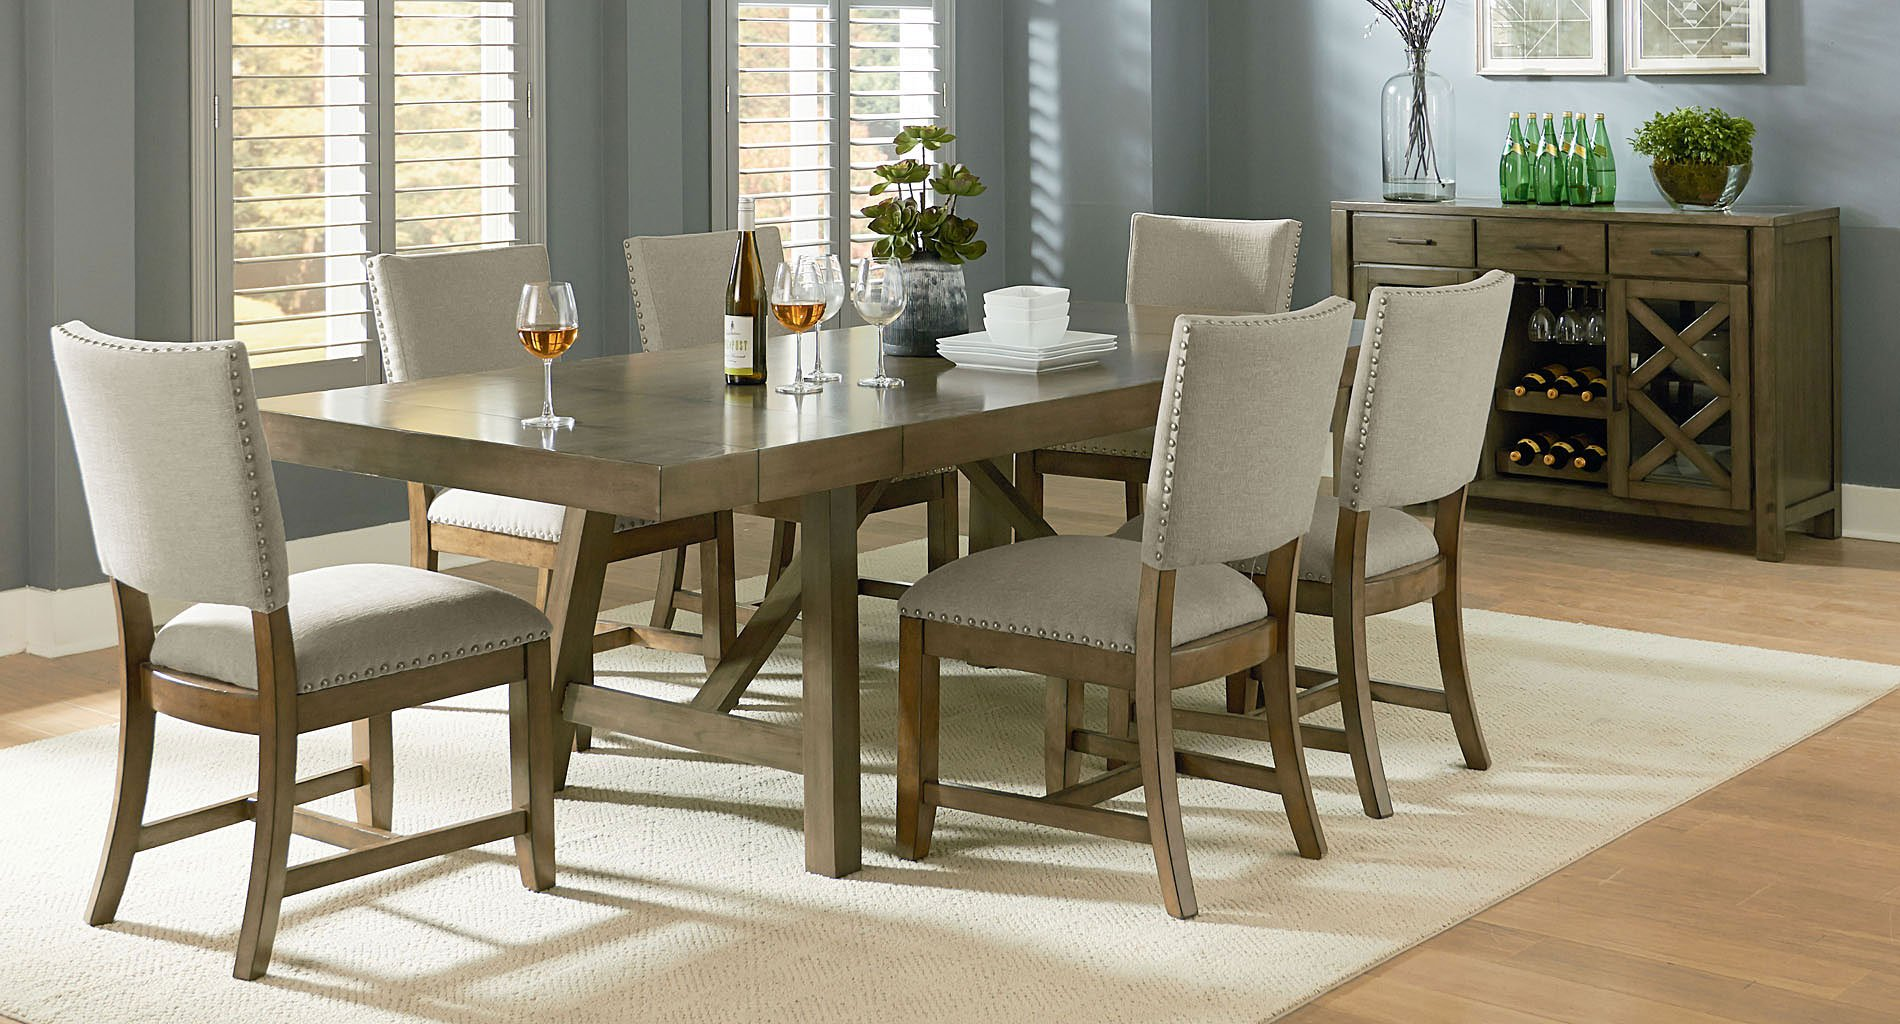 Grey Dining Room Chairs: Omaha Dining Room Set W/ Upholstered Chairs (Grey